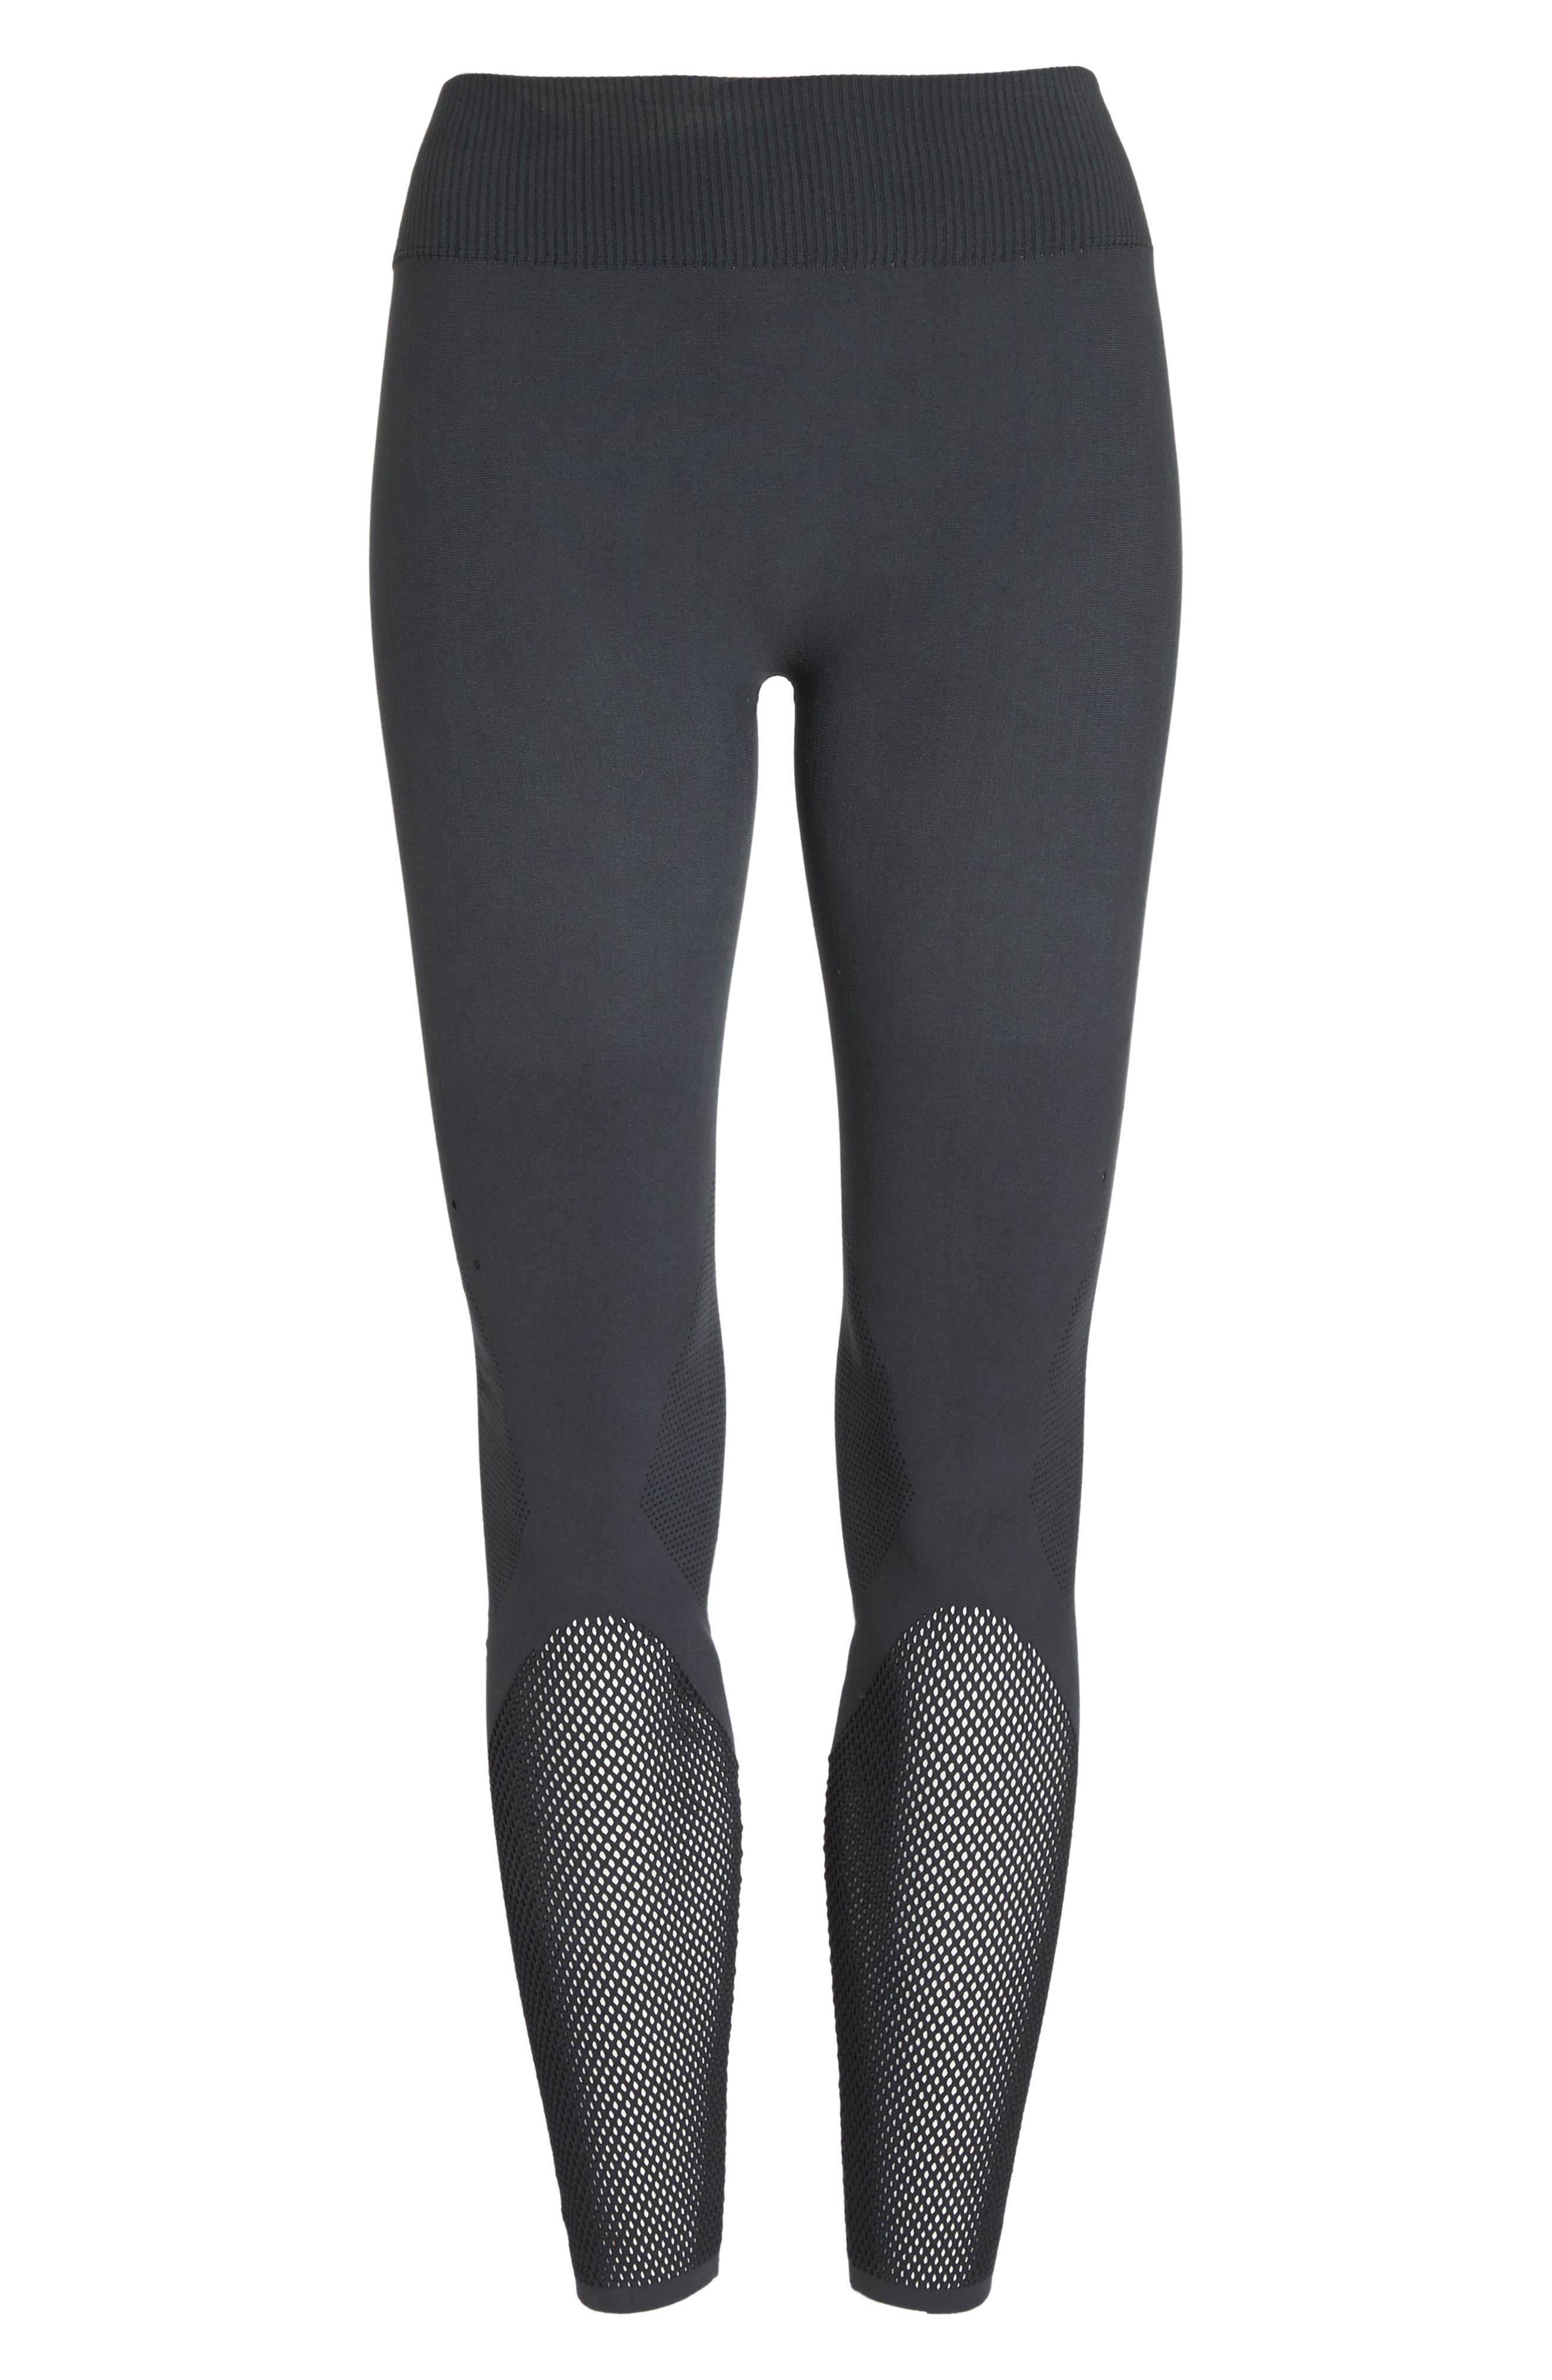 Warp Climacool<sup>®</sup> Knit Tights,                             Alternate thumbnail 6, color,                             Carbon/ Black